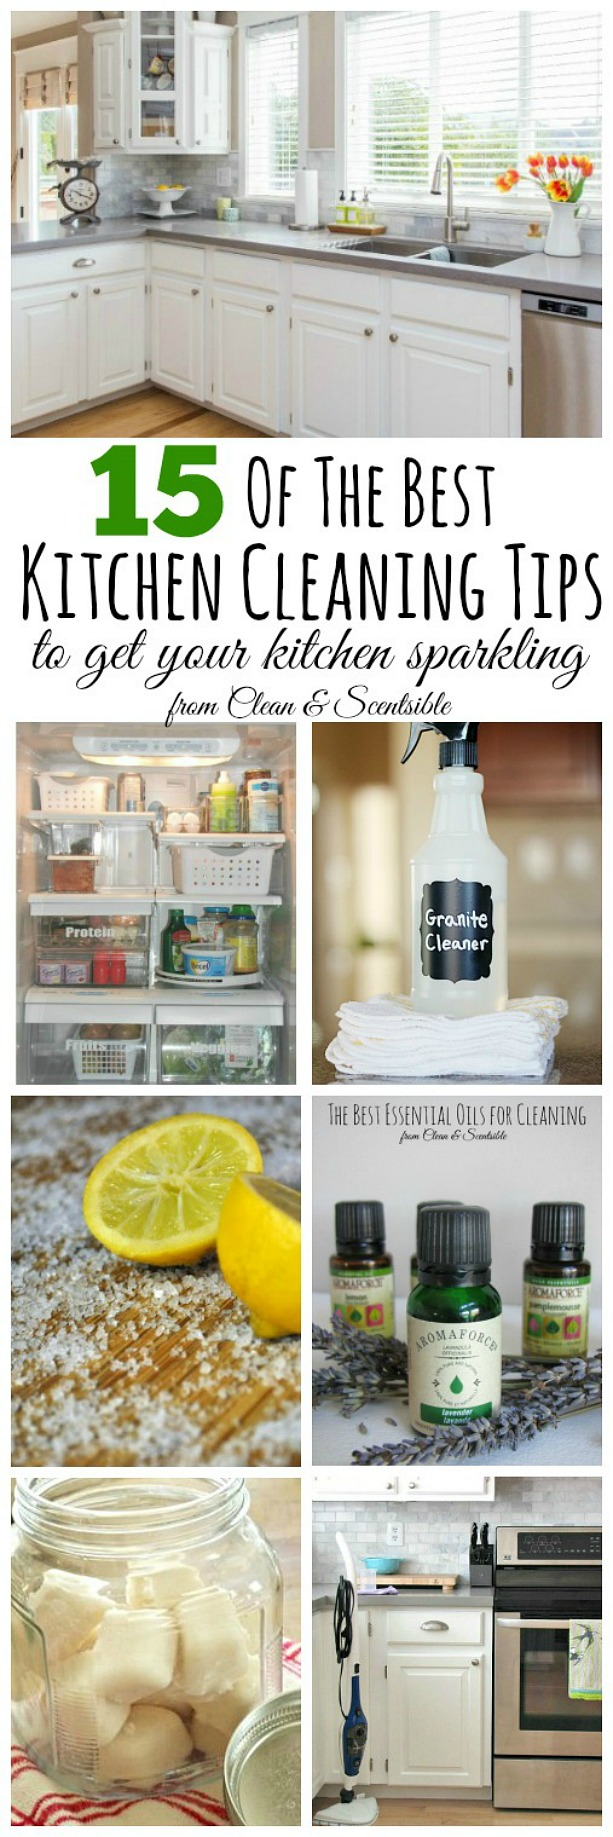 Lots of great kitchen cleaning tips to get it cleaned from top to bottom!